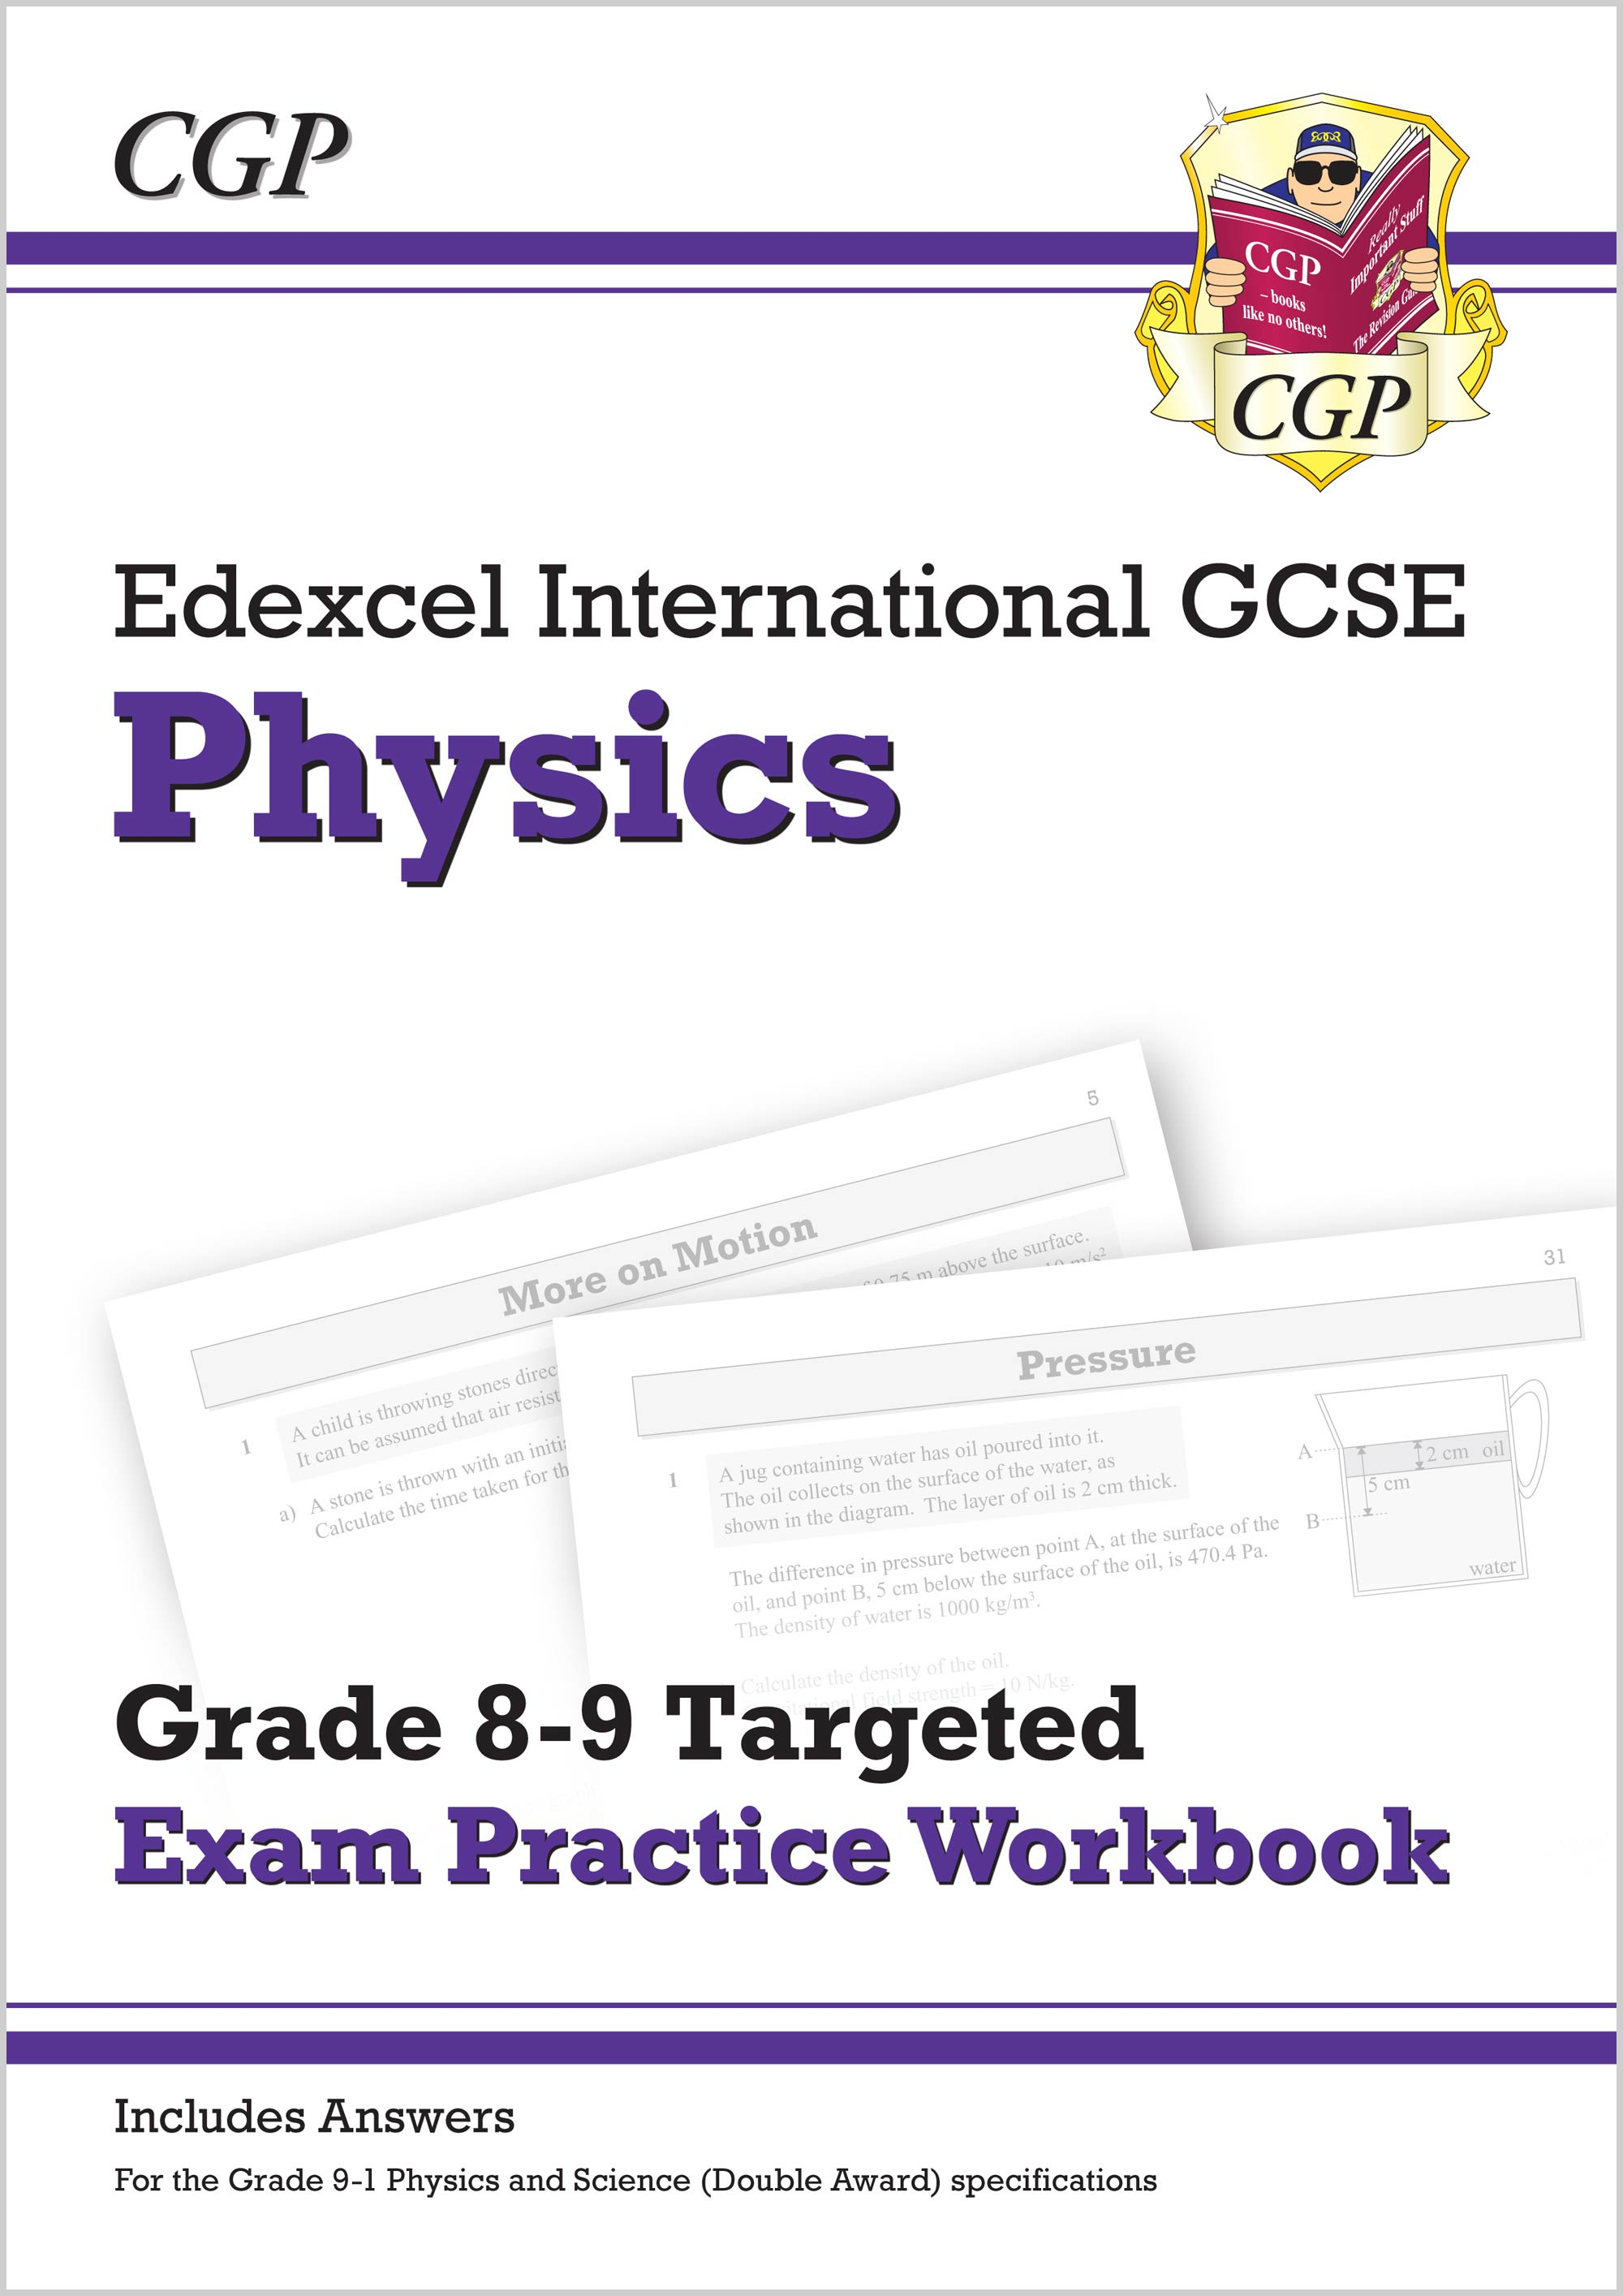 PE9QI41 - Edexcel International GCSE Physics: Grade 8-9 Targeted Exam Practice Workbook (with answer